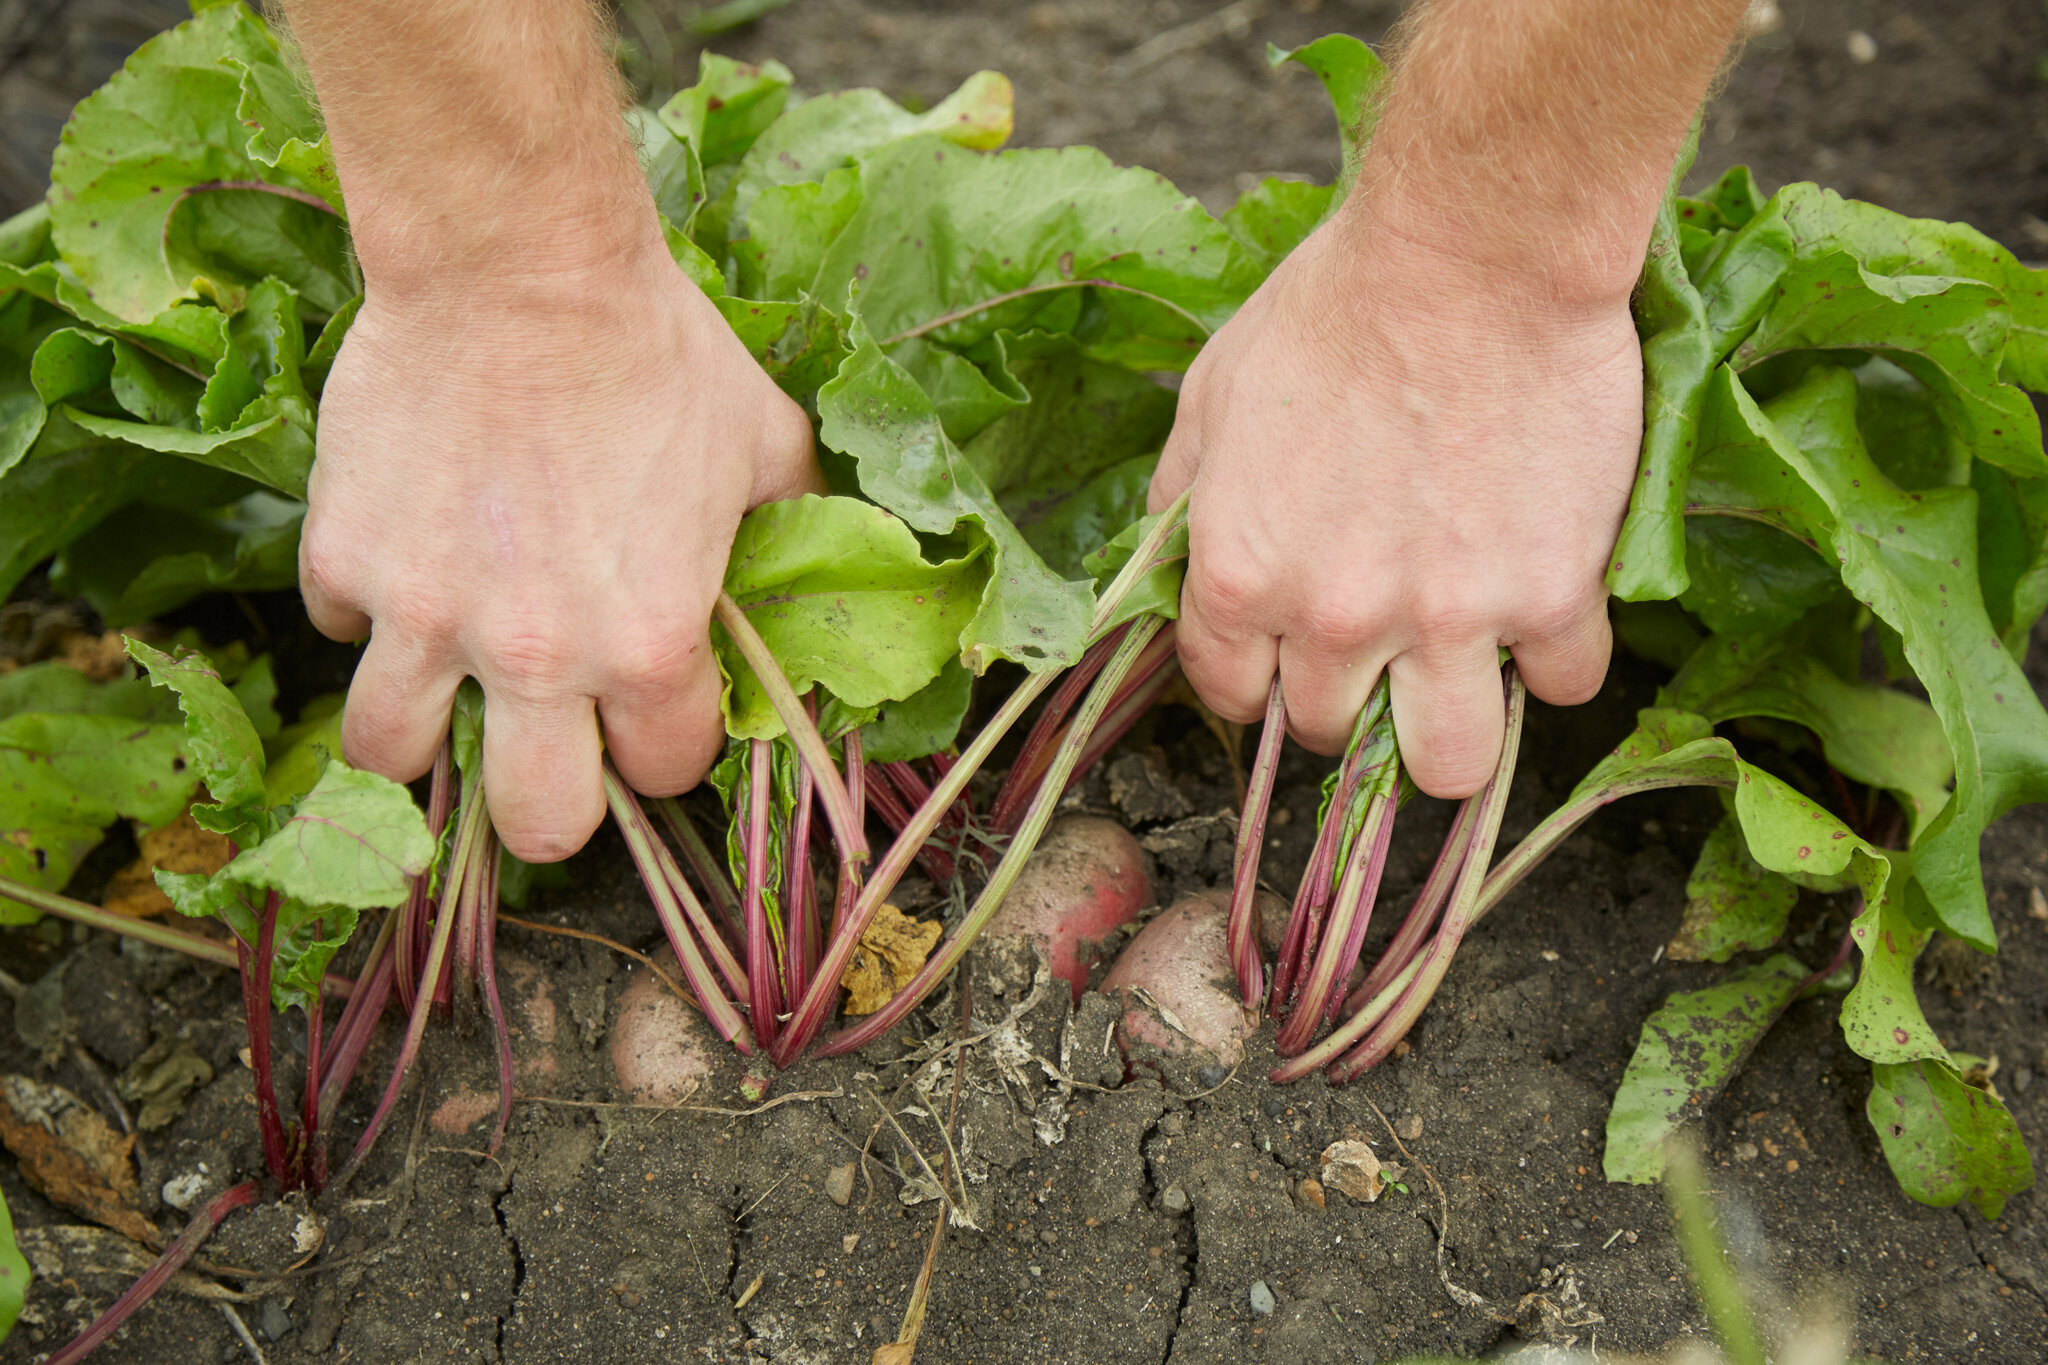 Pulling beets out of the ground by hand.